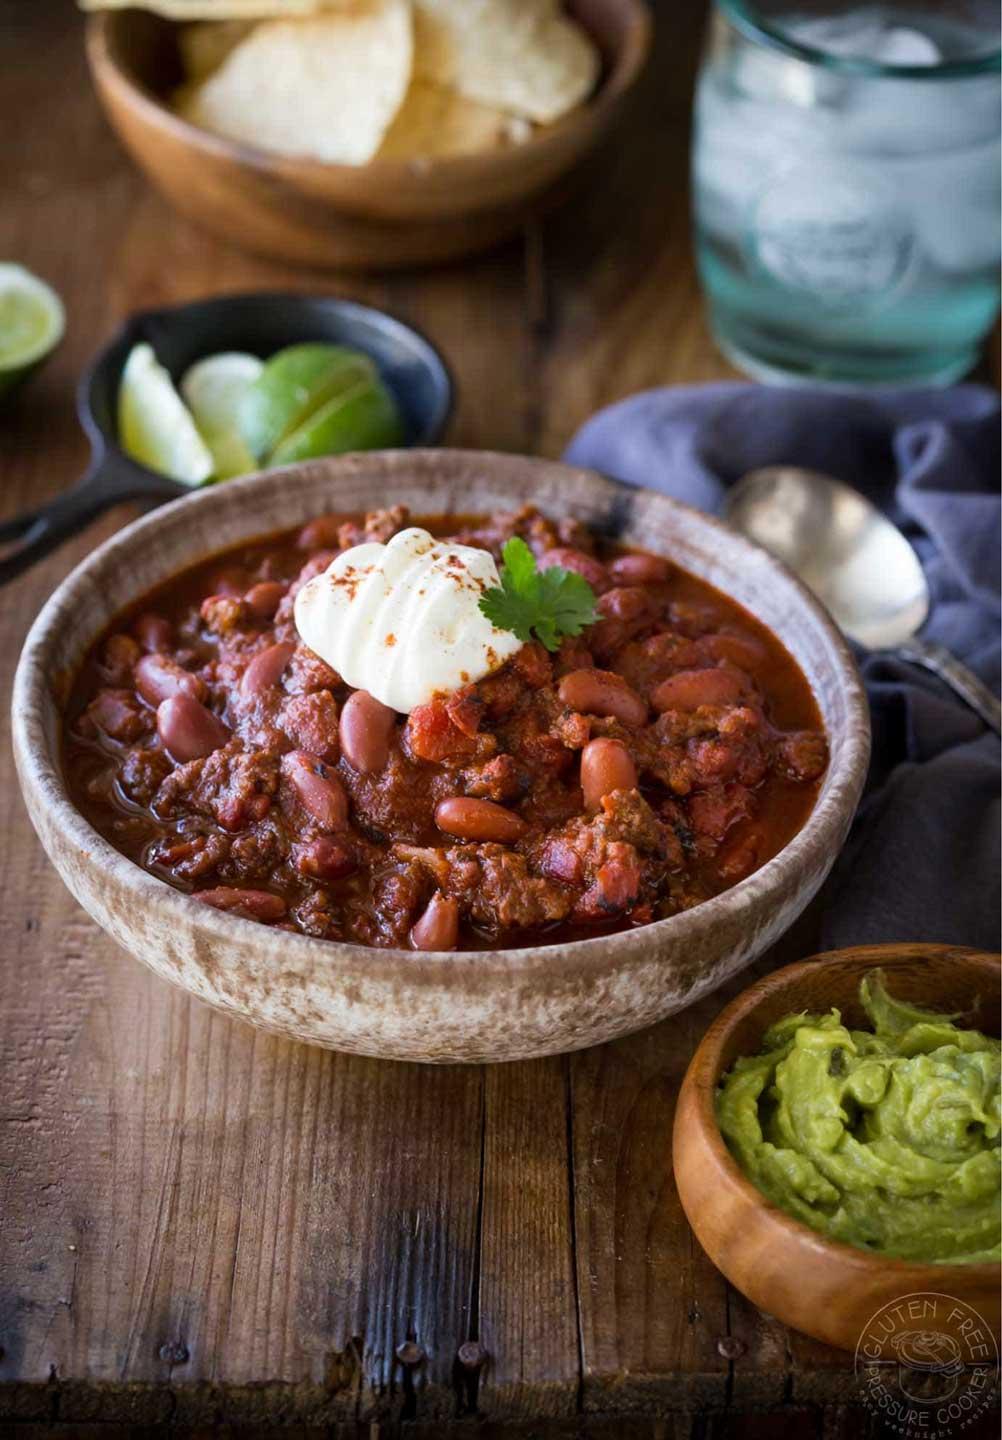 Is this truly the BEST EVER Instant Pot Chili! (from Sheena at Gluten Free Pressure Cooker)? You decide! And don't miss all our other pressure cooker chili recipes, too!